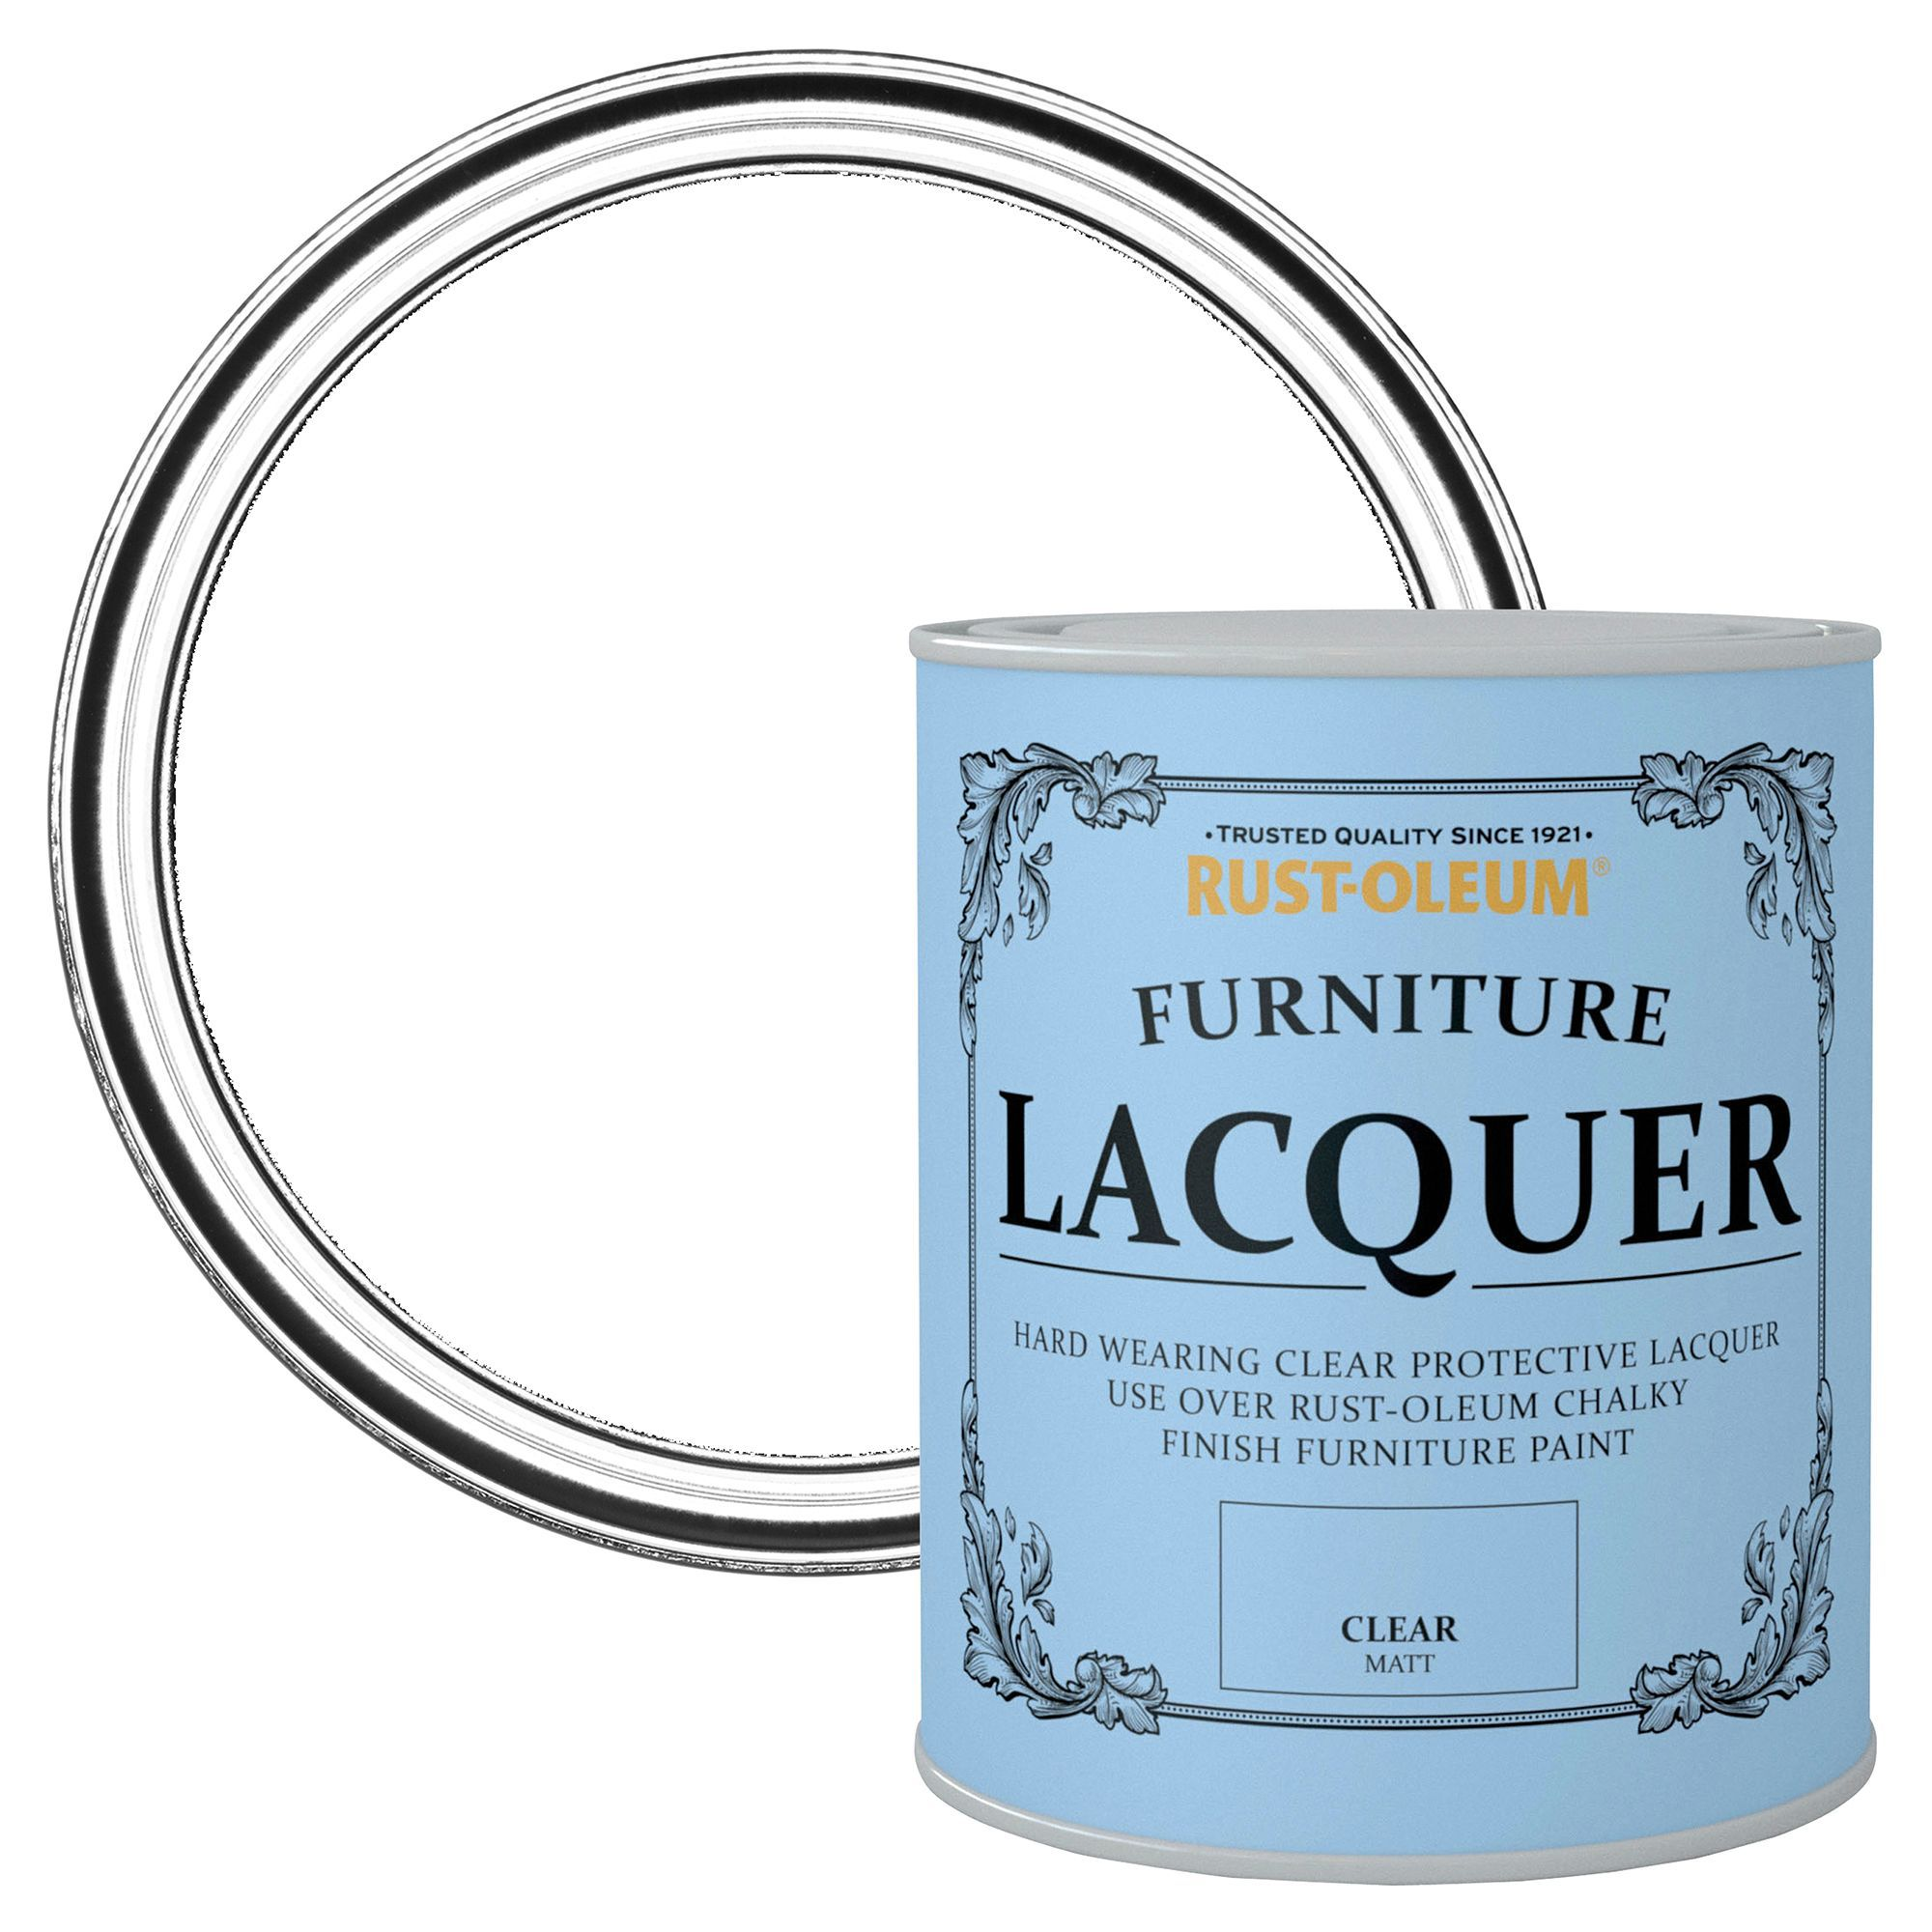 lacquer furniture paint lacquer furniture paint. Rust-Oleum Clear Matt Furniture Lacquer 750 Ml | Departments DIY At B\u0026Q Paint